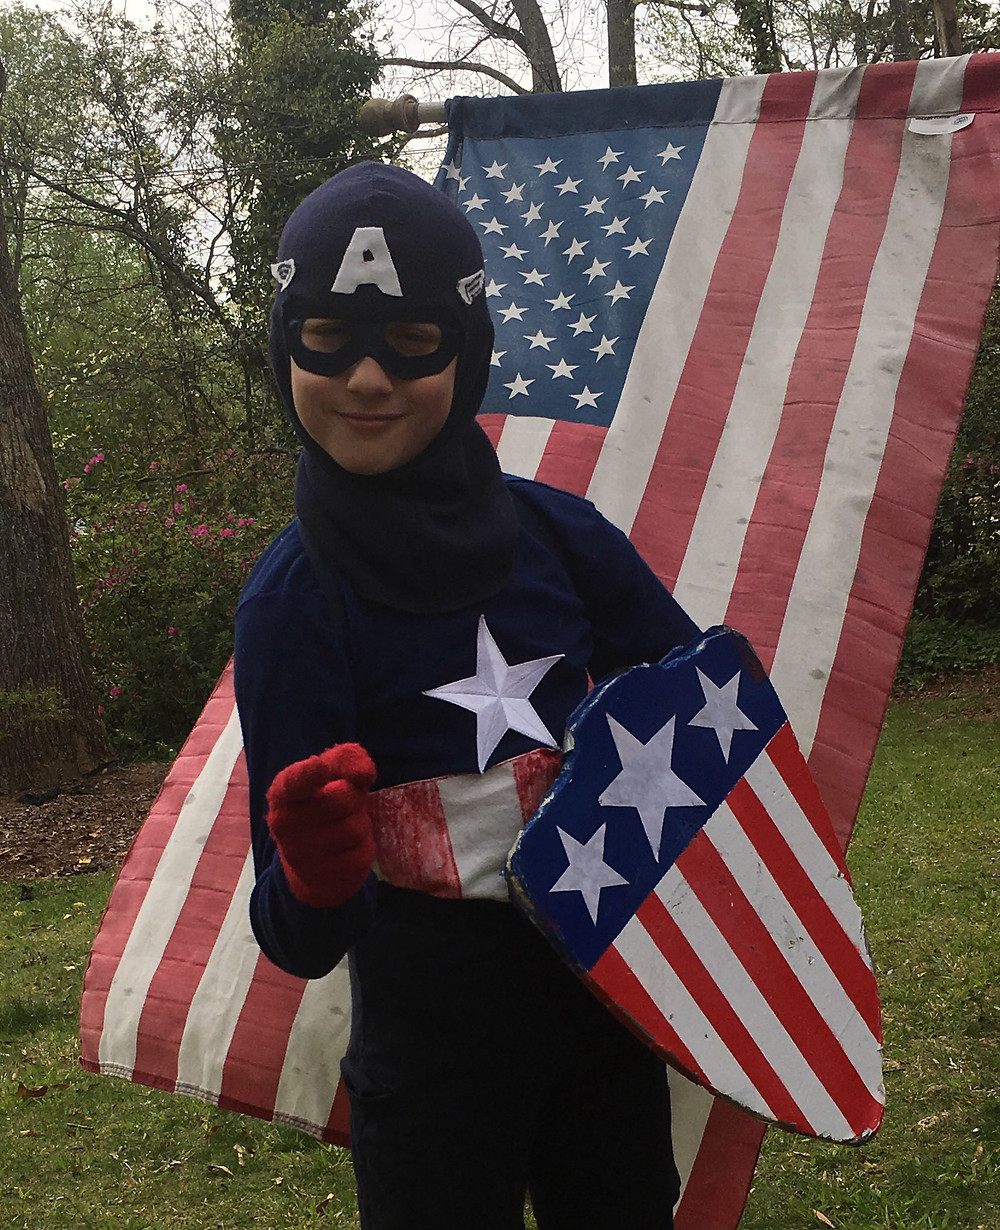 Shaw Shurley as Captain America